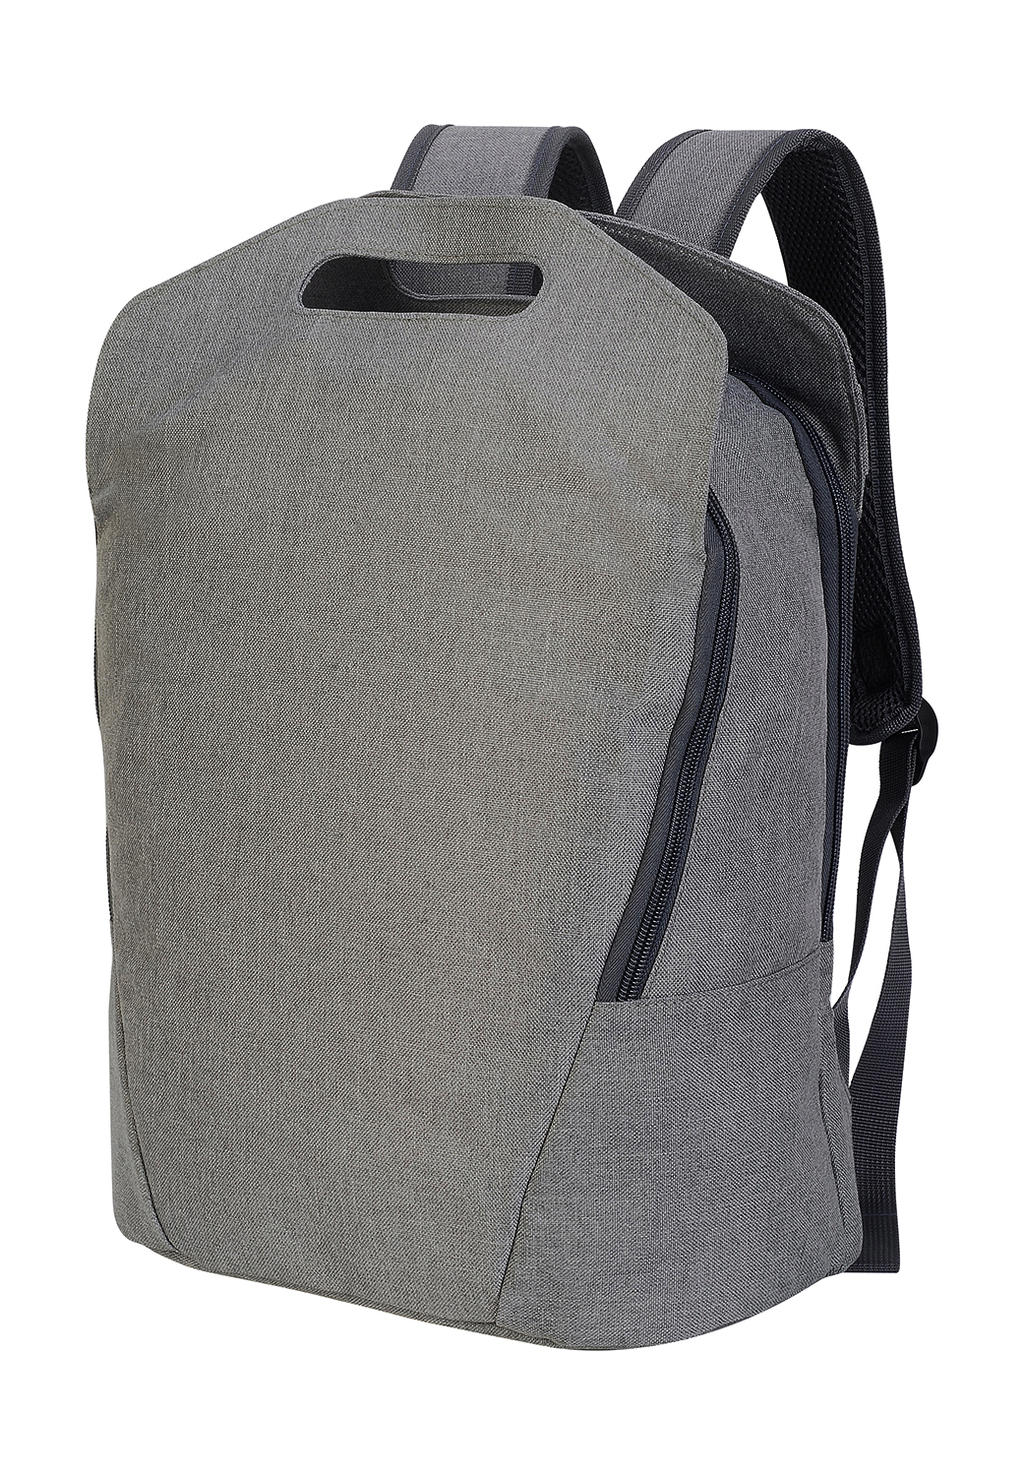 Anytime Laptop Backpack